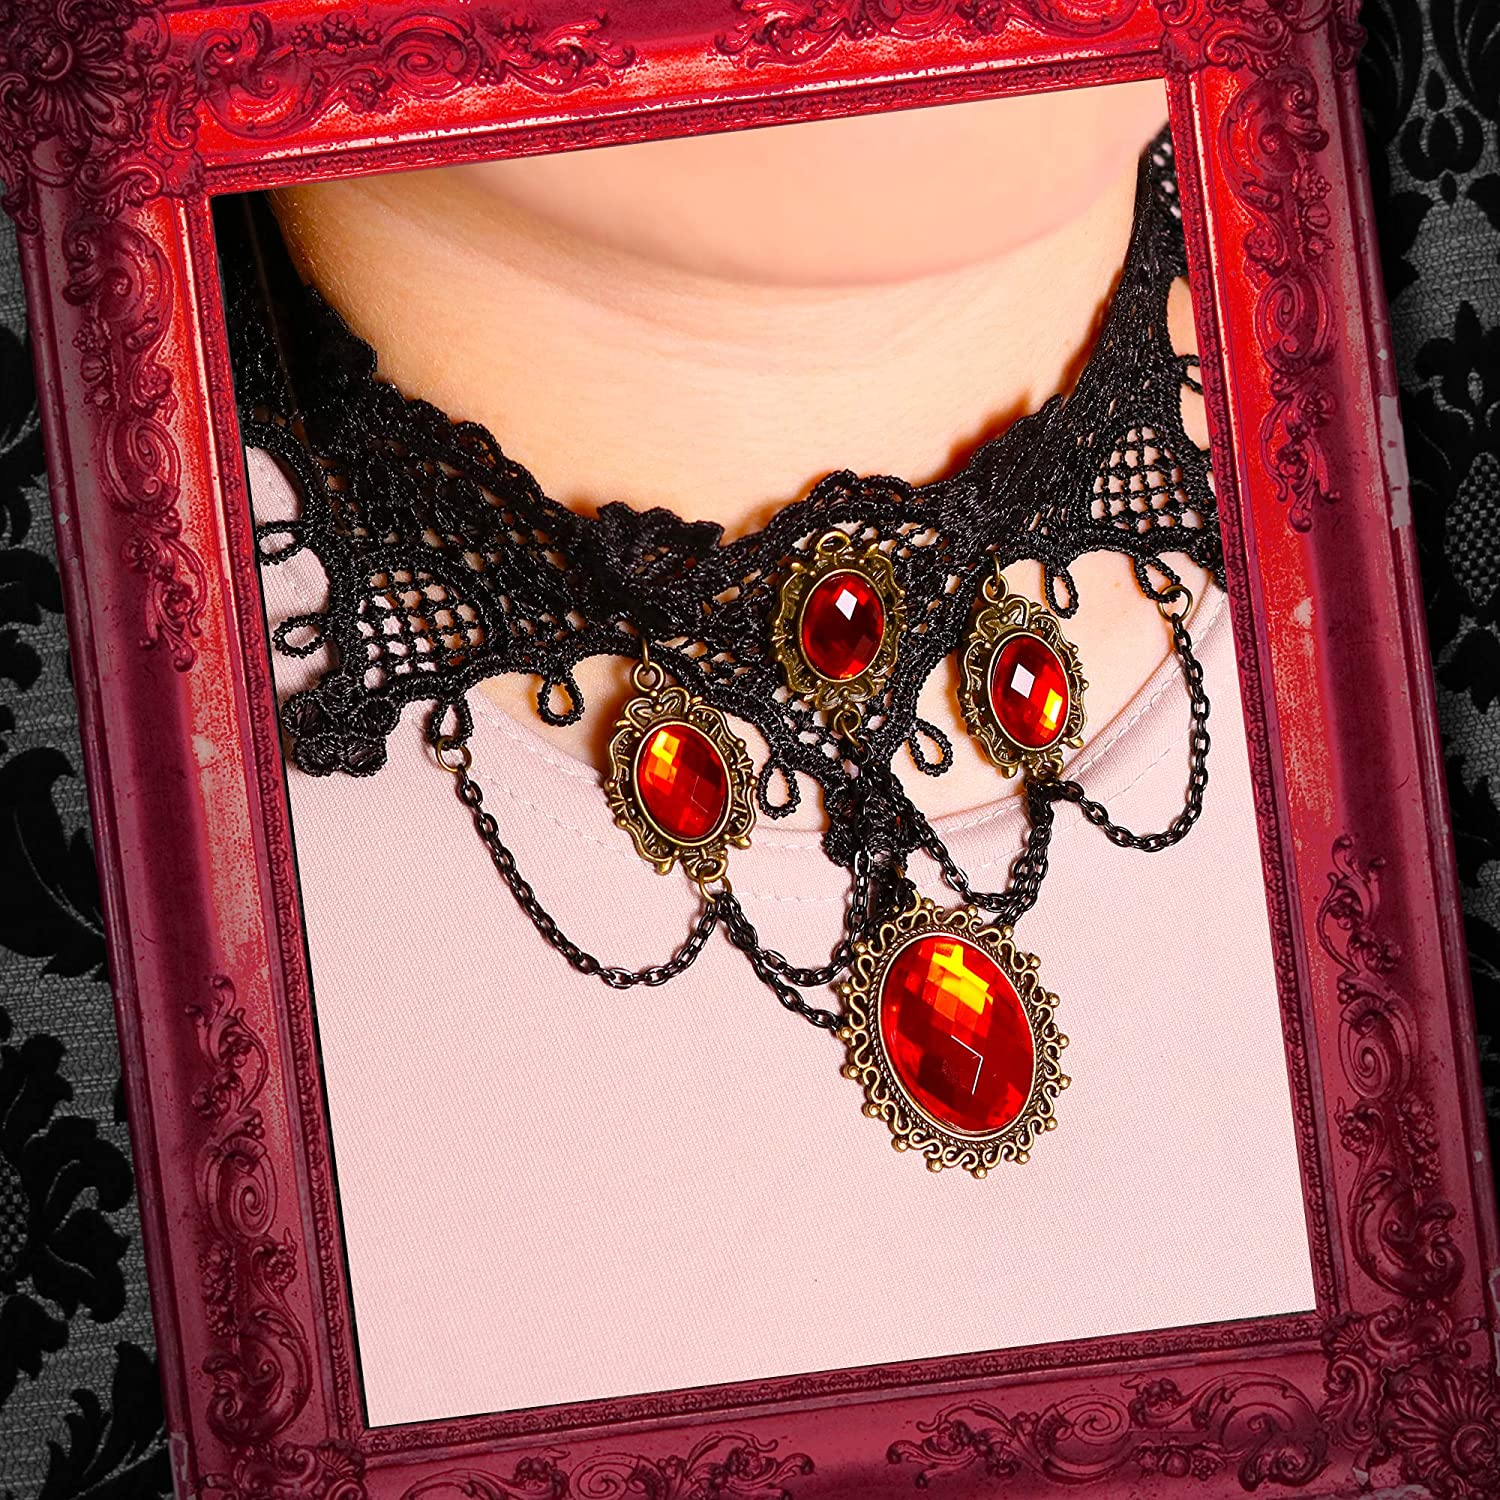 Skeleteen Gothic Vampire Jewelry Set Black Lace Choker with Red Rhinestone Earrings Pirate Costume Accessories Set for Women and Girls